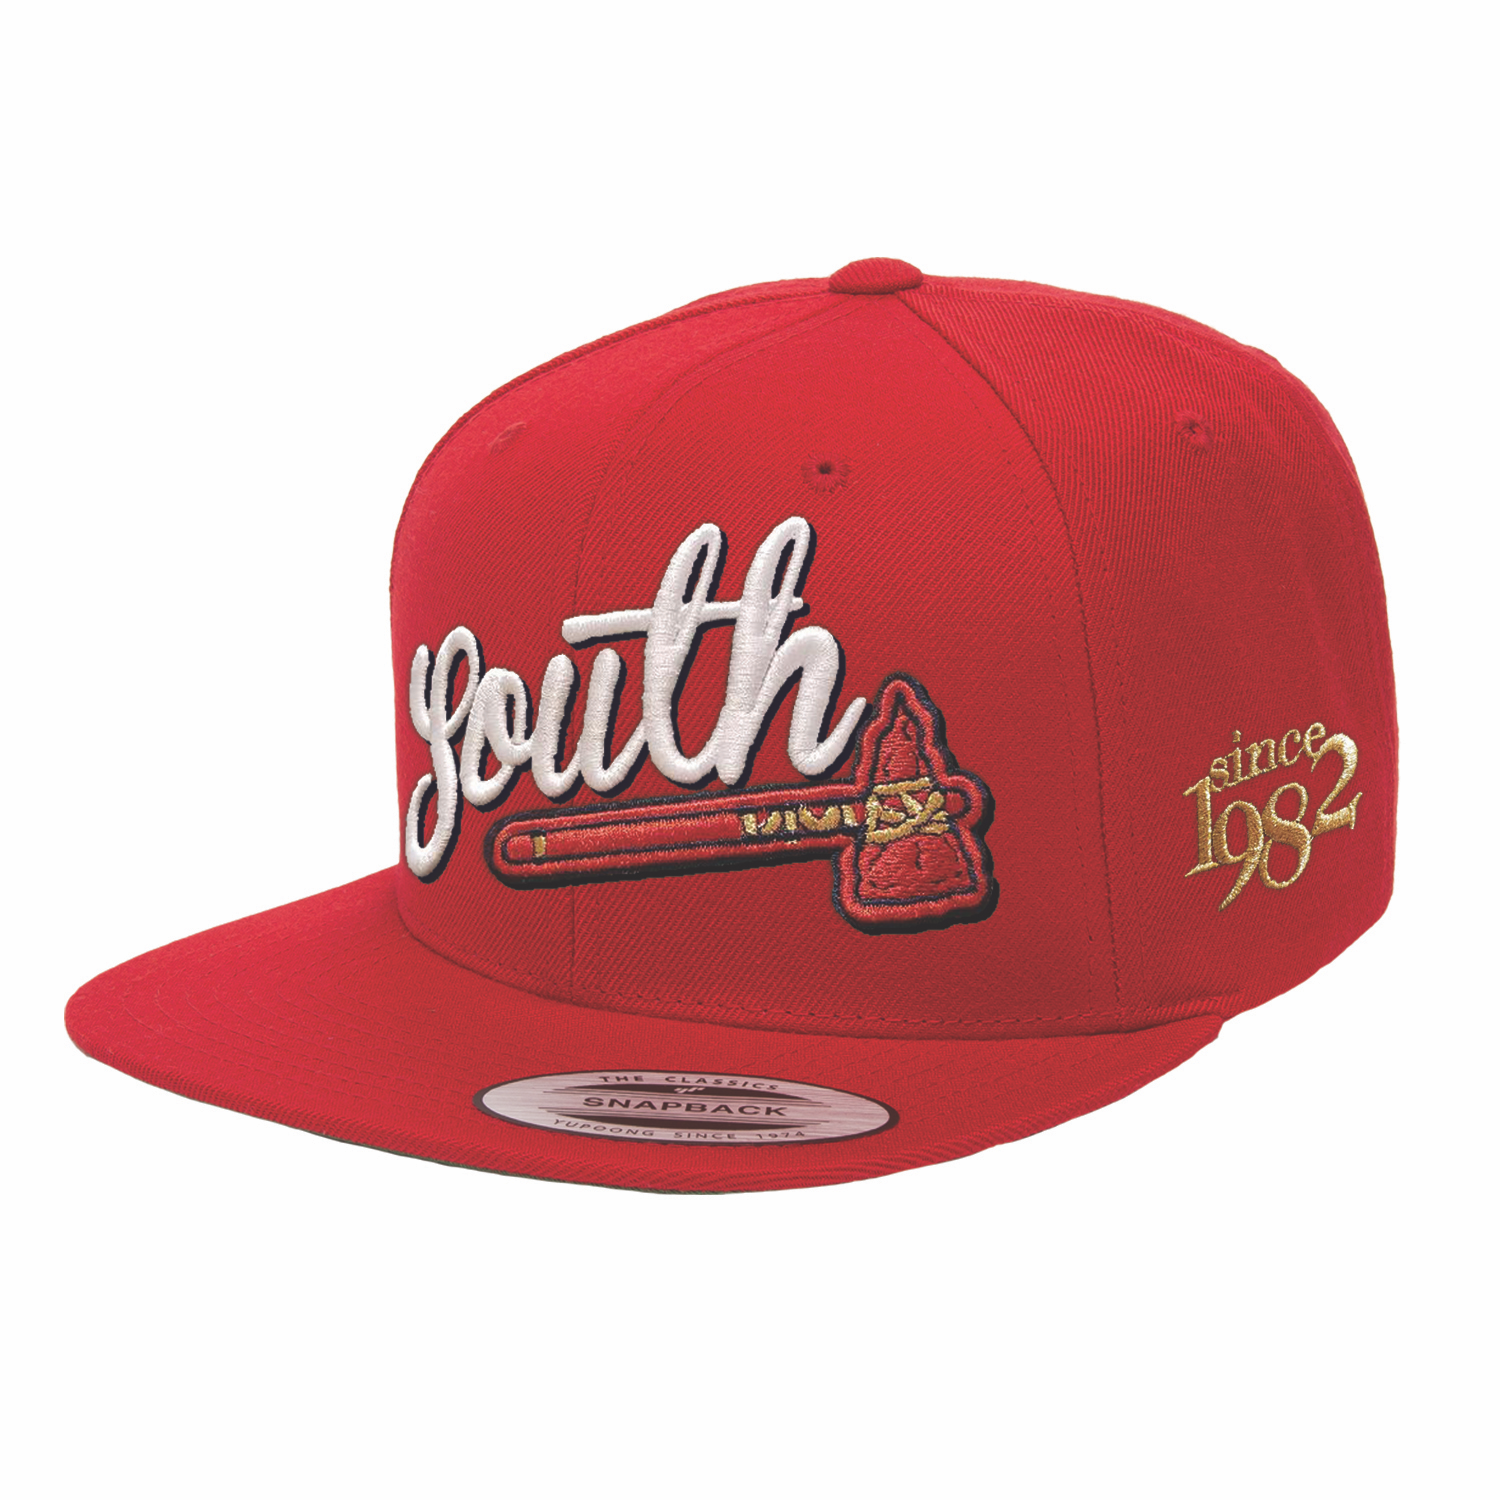 Home of the Brave Snapback - All Star